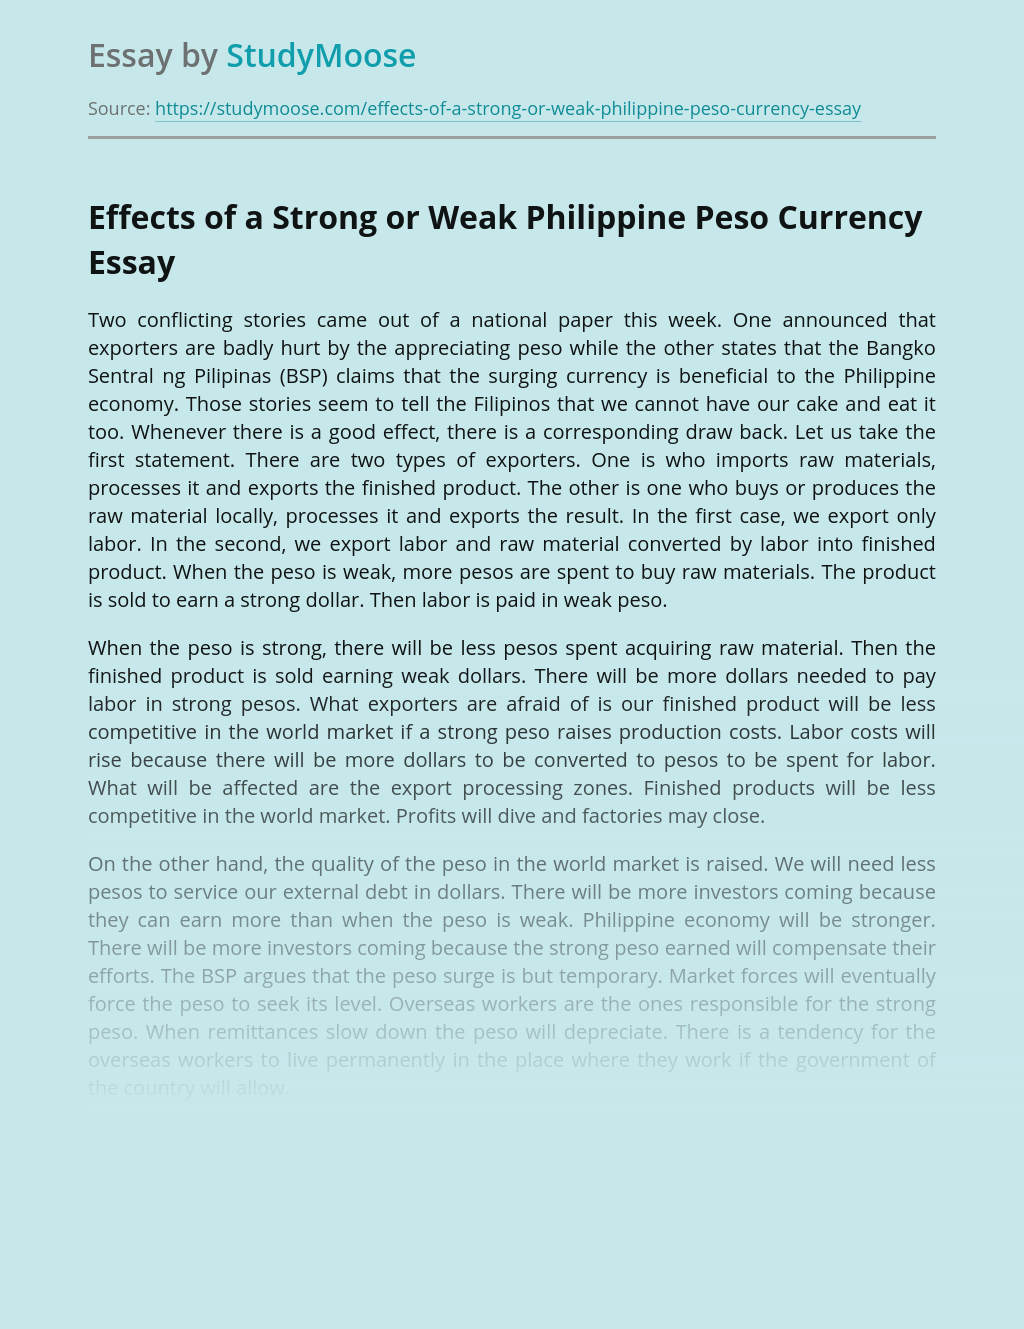 Effects of a Strong or Weak Philippine Peso Currency